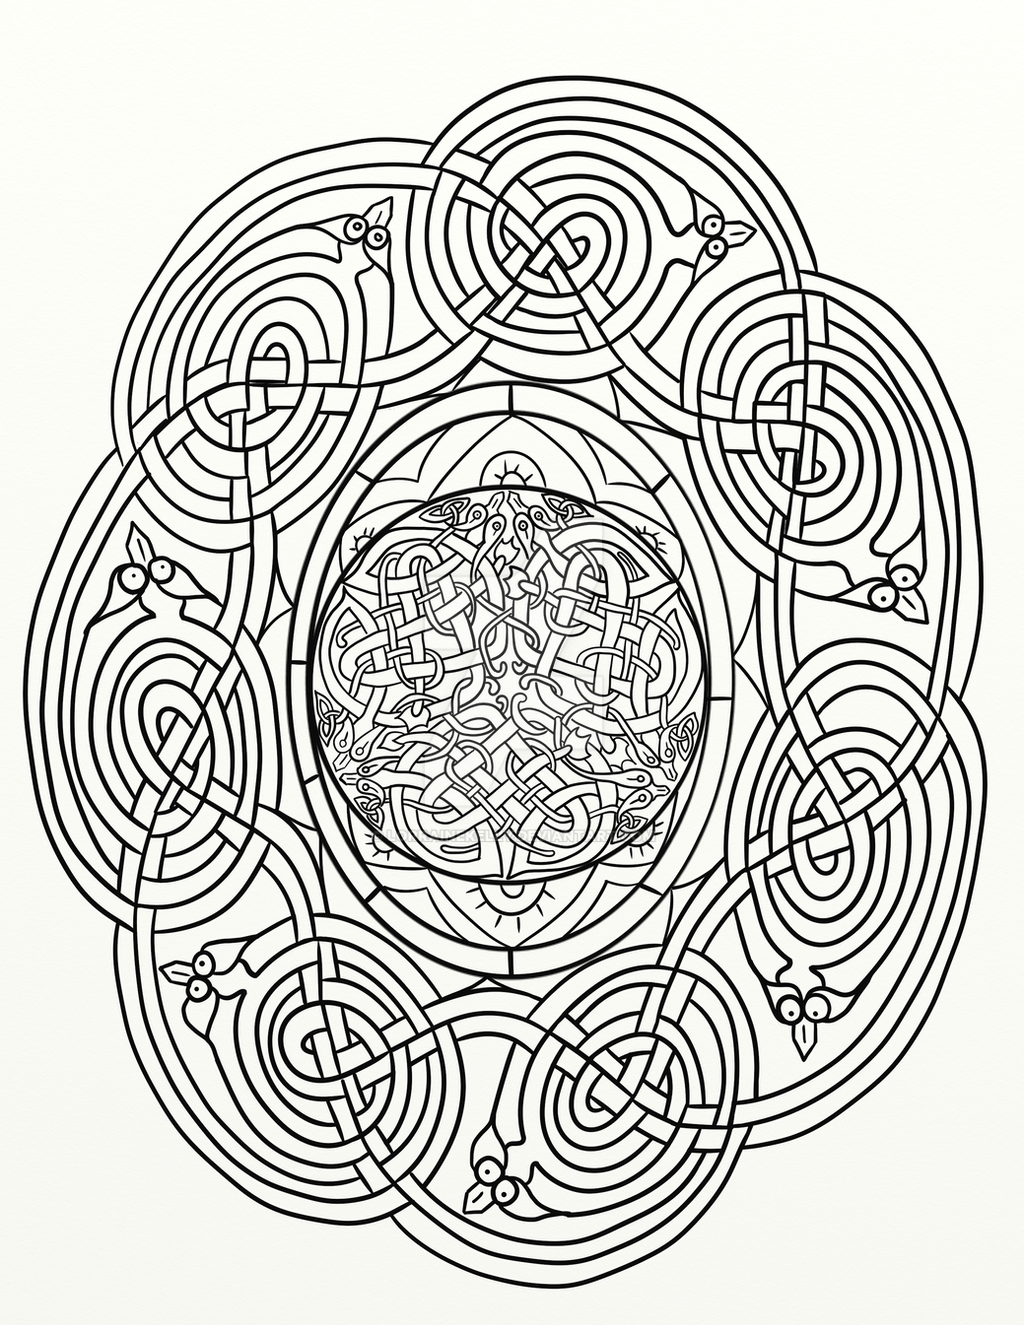 traditional dragon celtic knot coloring page by lorrainekelly on